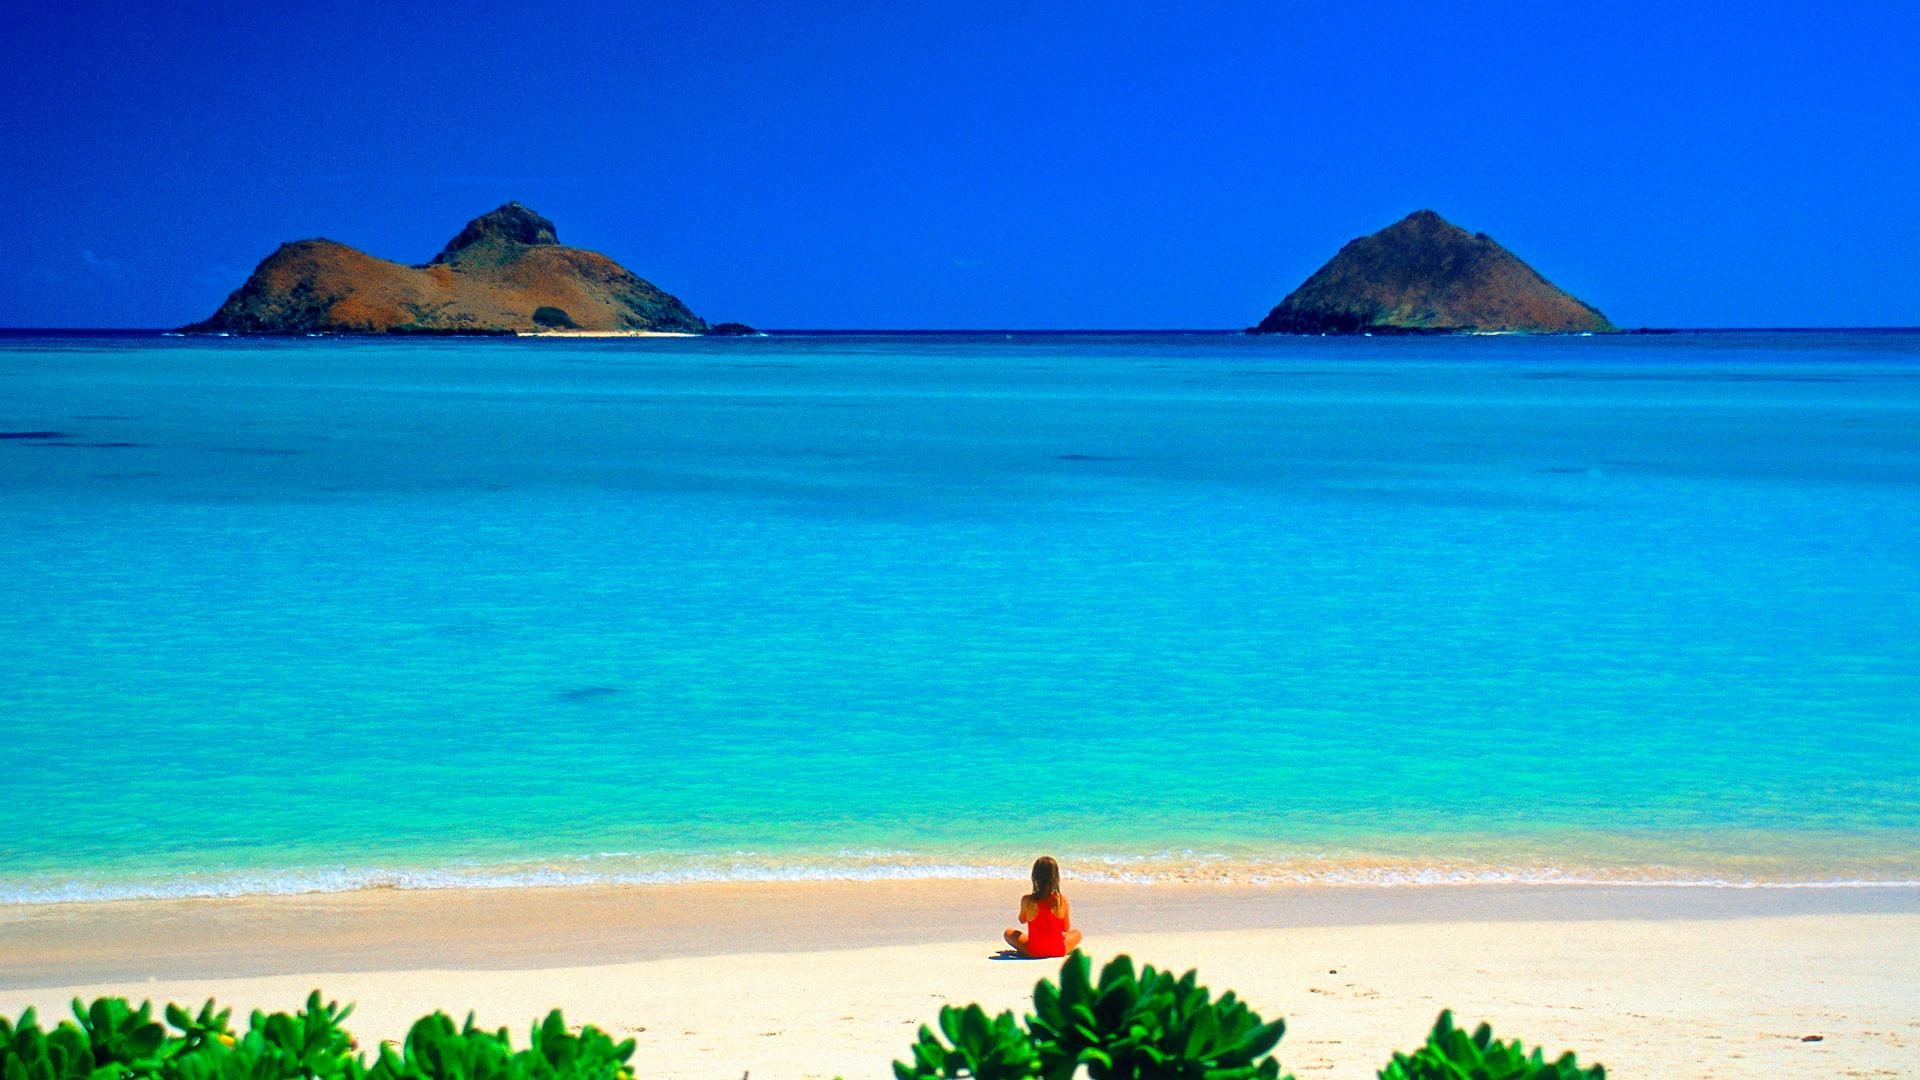 Lanikai Beach Hawaii Hd Wallpaper 1920x1080 | Download wallpapers page